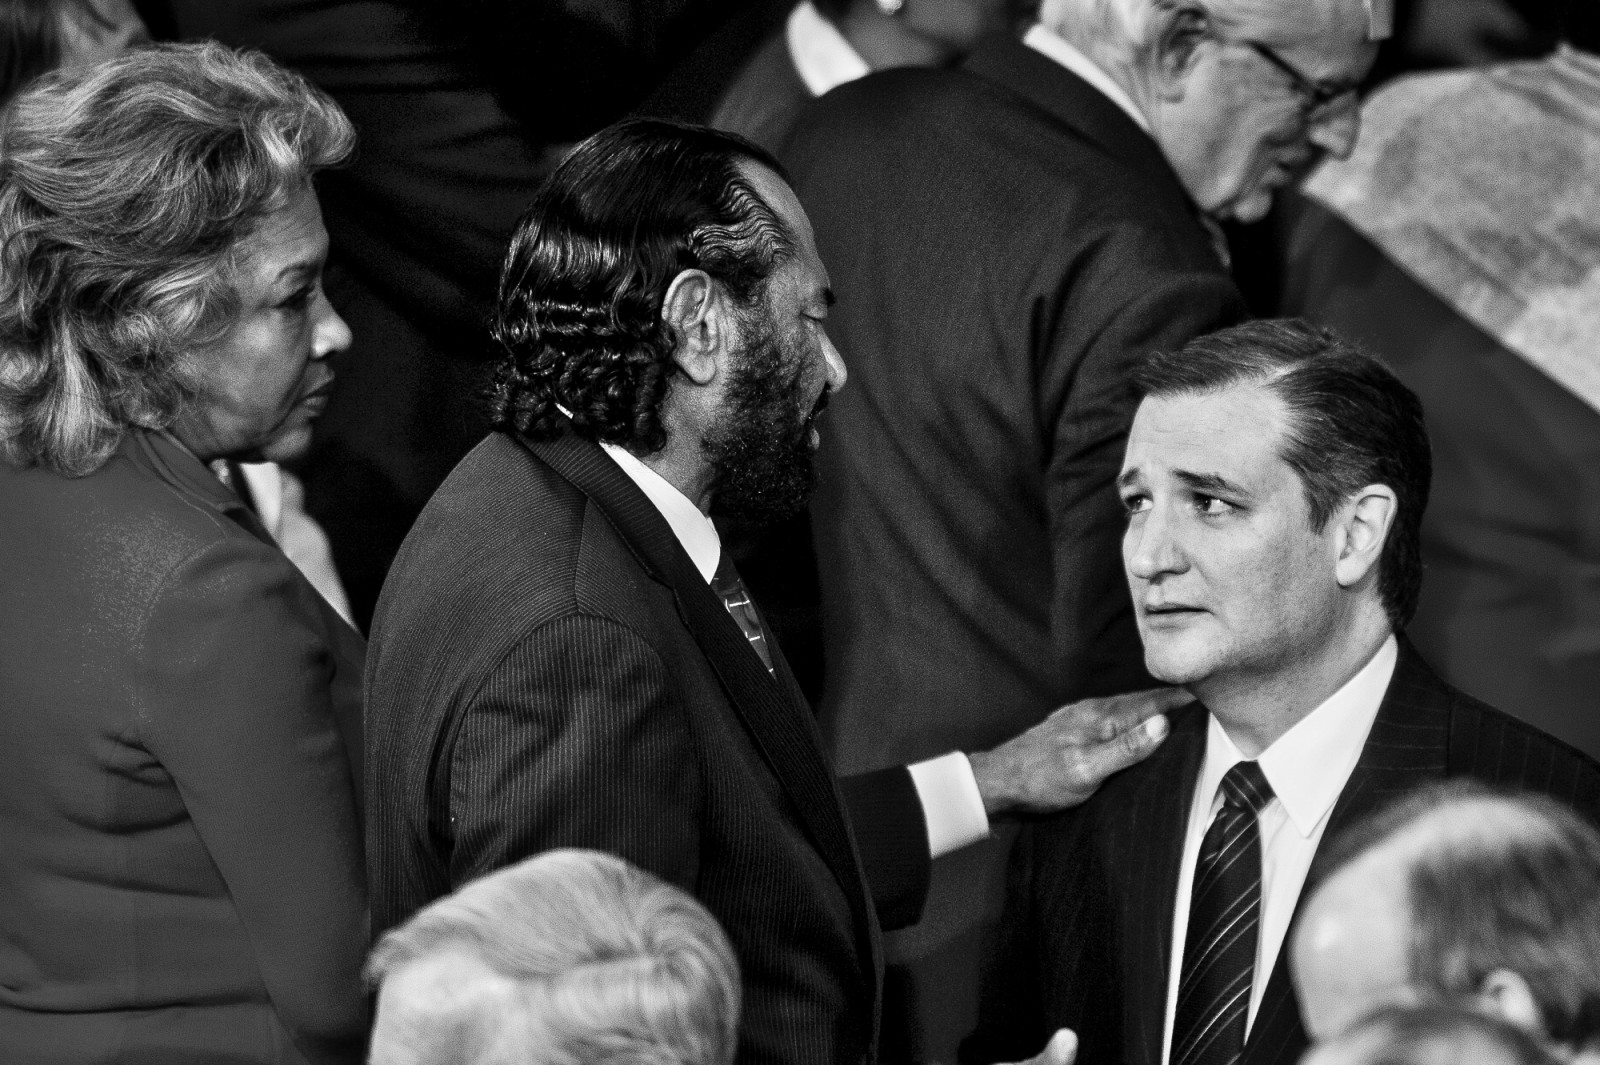 Senator Ted Cruz (R-TX), right, is greeted by Rep. Al Green (D-TX) before U.S. President Barack Obama delivers the State of the Union address to a joint session of Congress at the Capitol in Washington, District of Columbia, U.S., on Tuesday, Jan. 20, 2015.